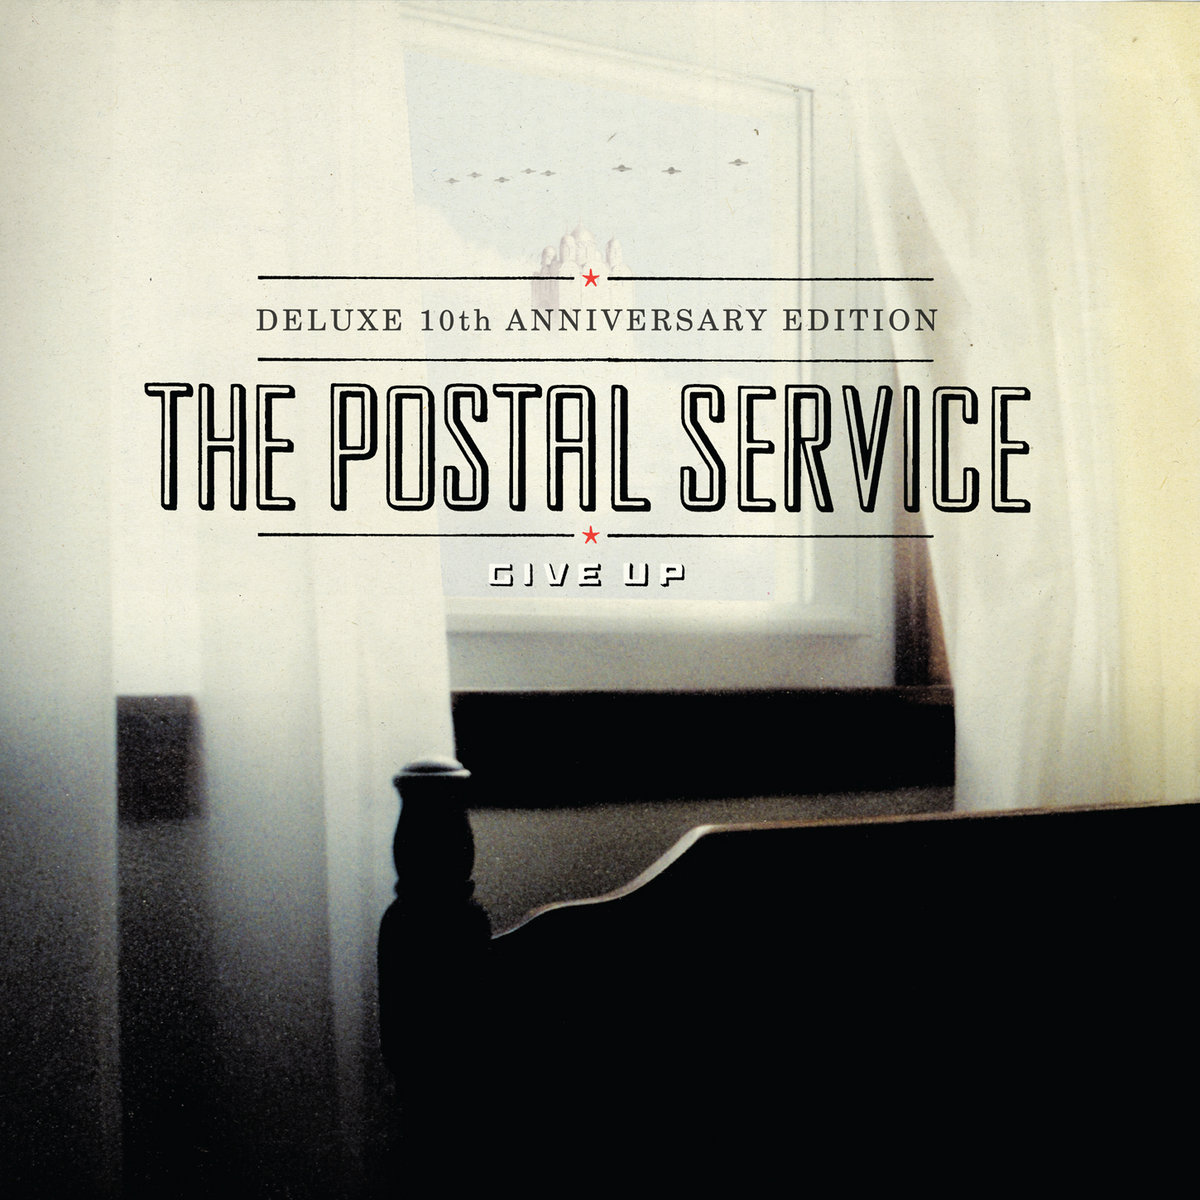 postal service give up 10th anniversary